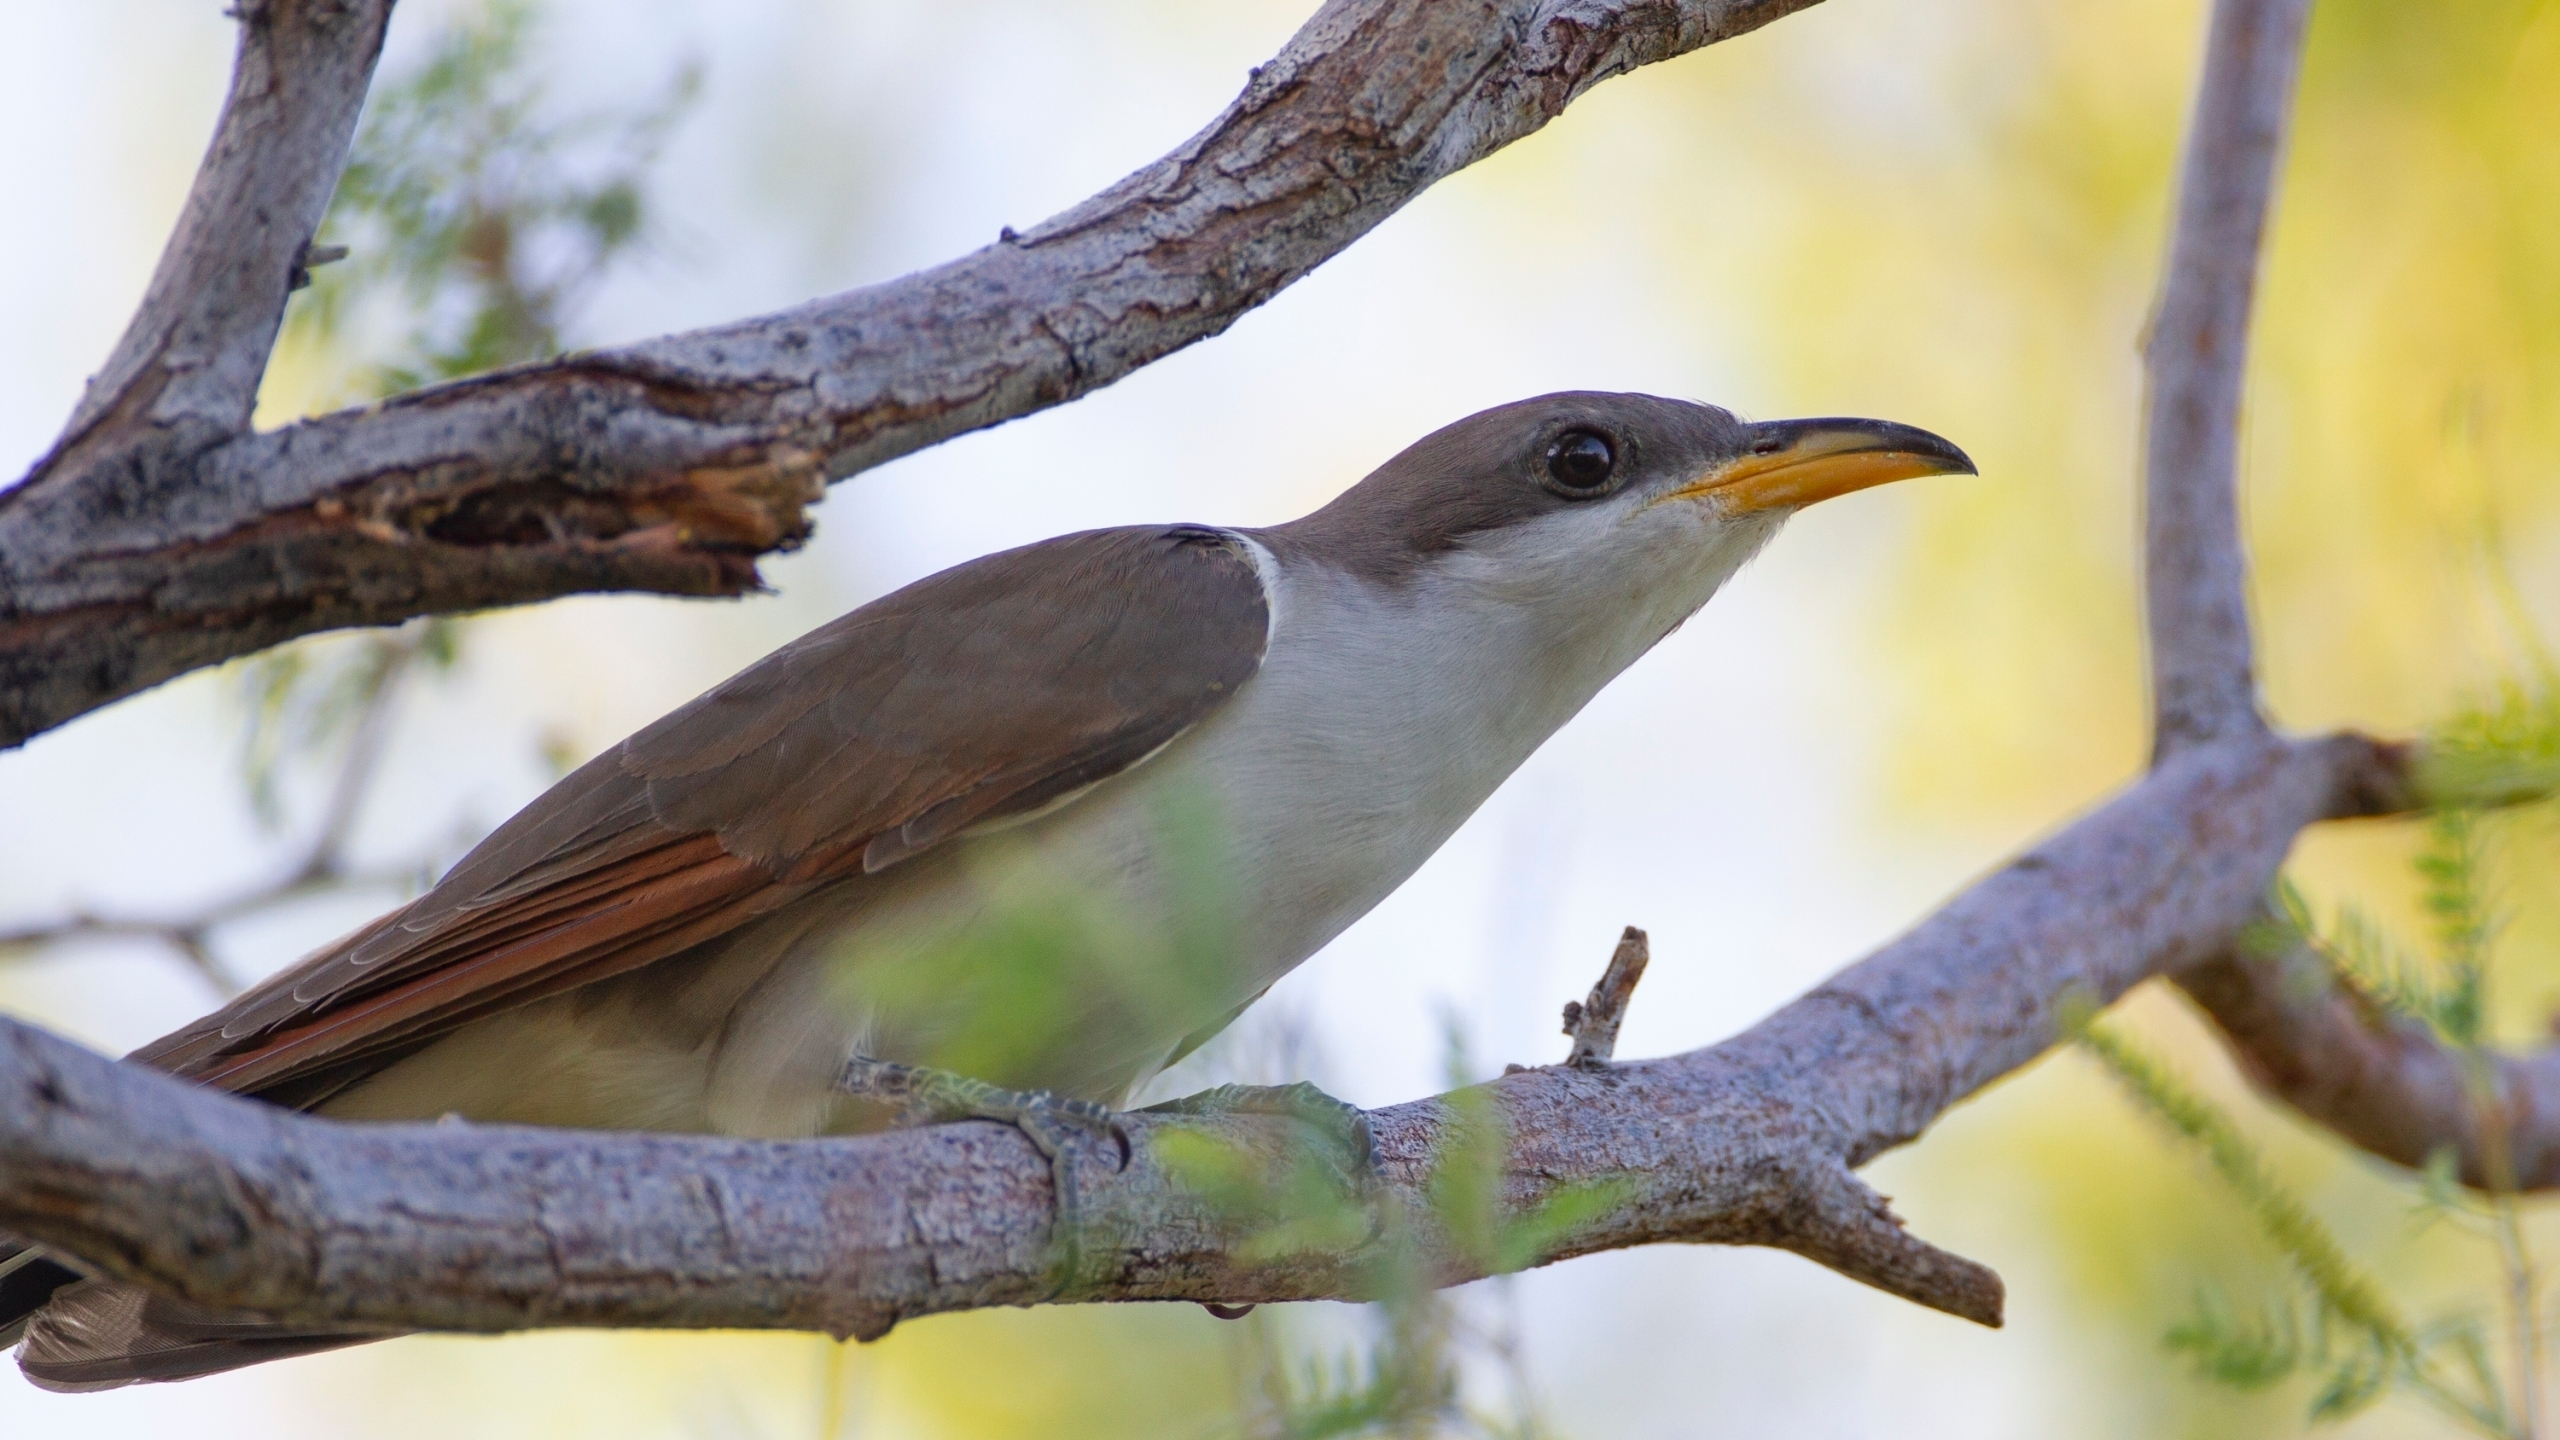 FILE - This July 8, 2019, file photo provided by the United States Fish and Wildlife Service, shows a yellow-billed cuckoo. (Peter Pearsall/United States Fish and Wildlife Service via AP, File)